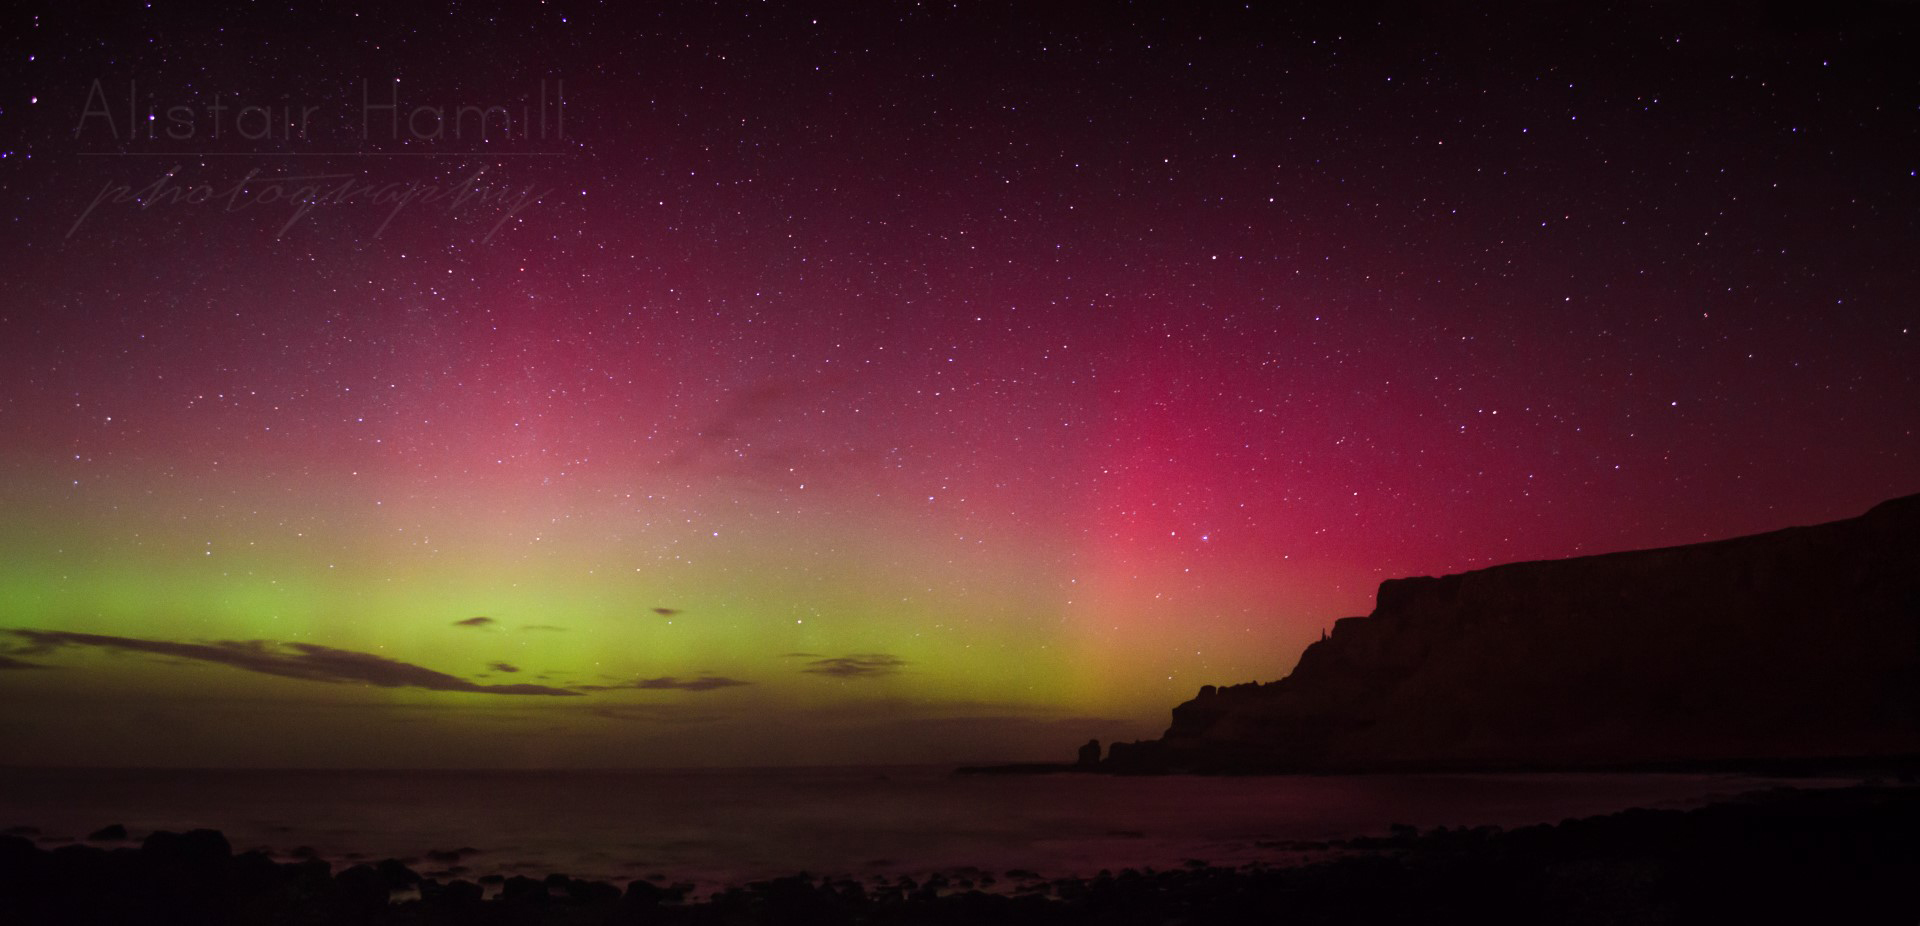 That famous Causeway headland bathed in a glorious auroral display.